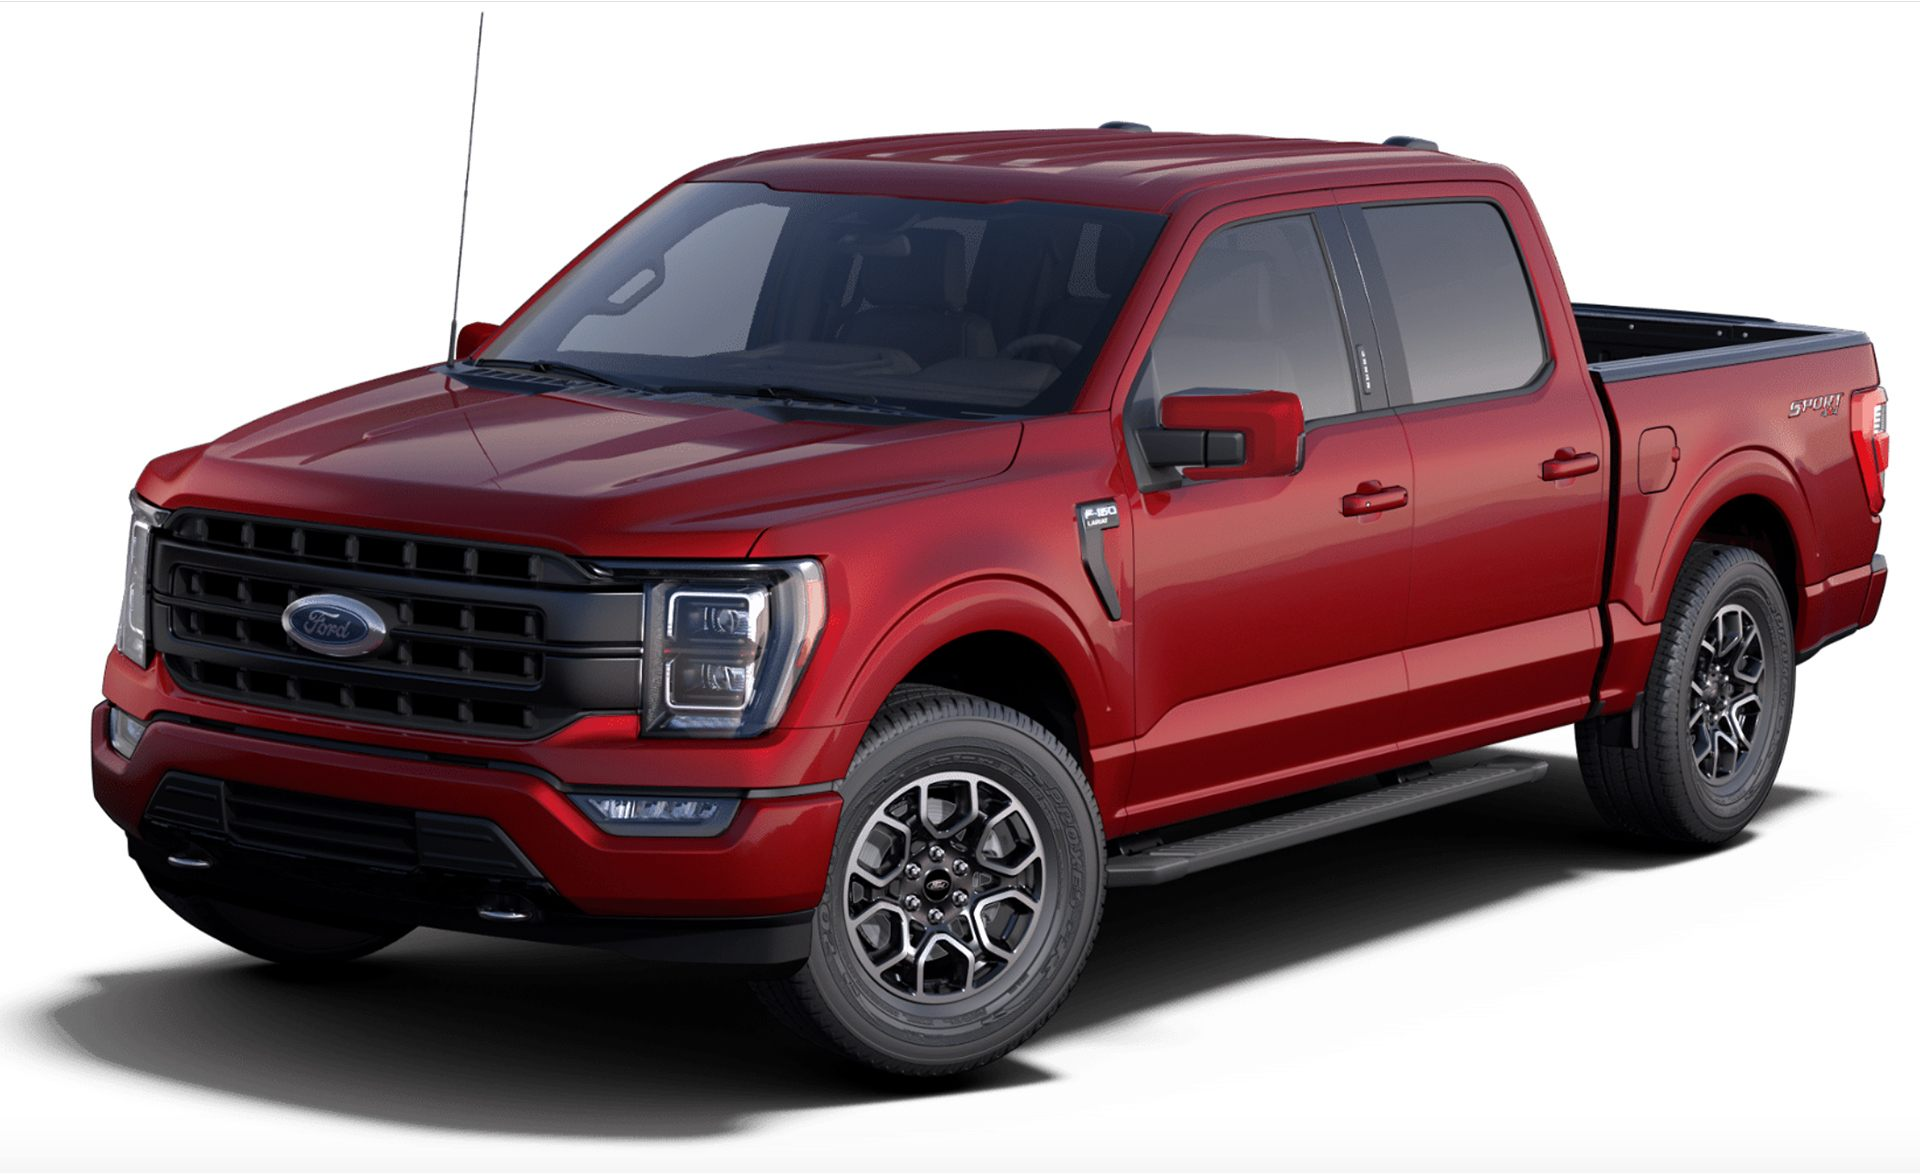 2021 Ford F-150 Lariat in Rapid Red